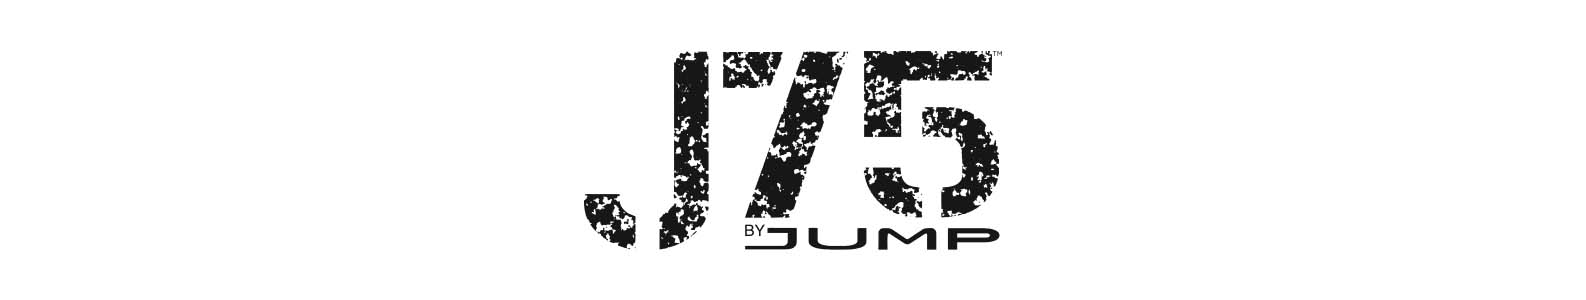 J75 by Jump brand header image